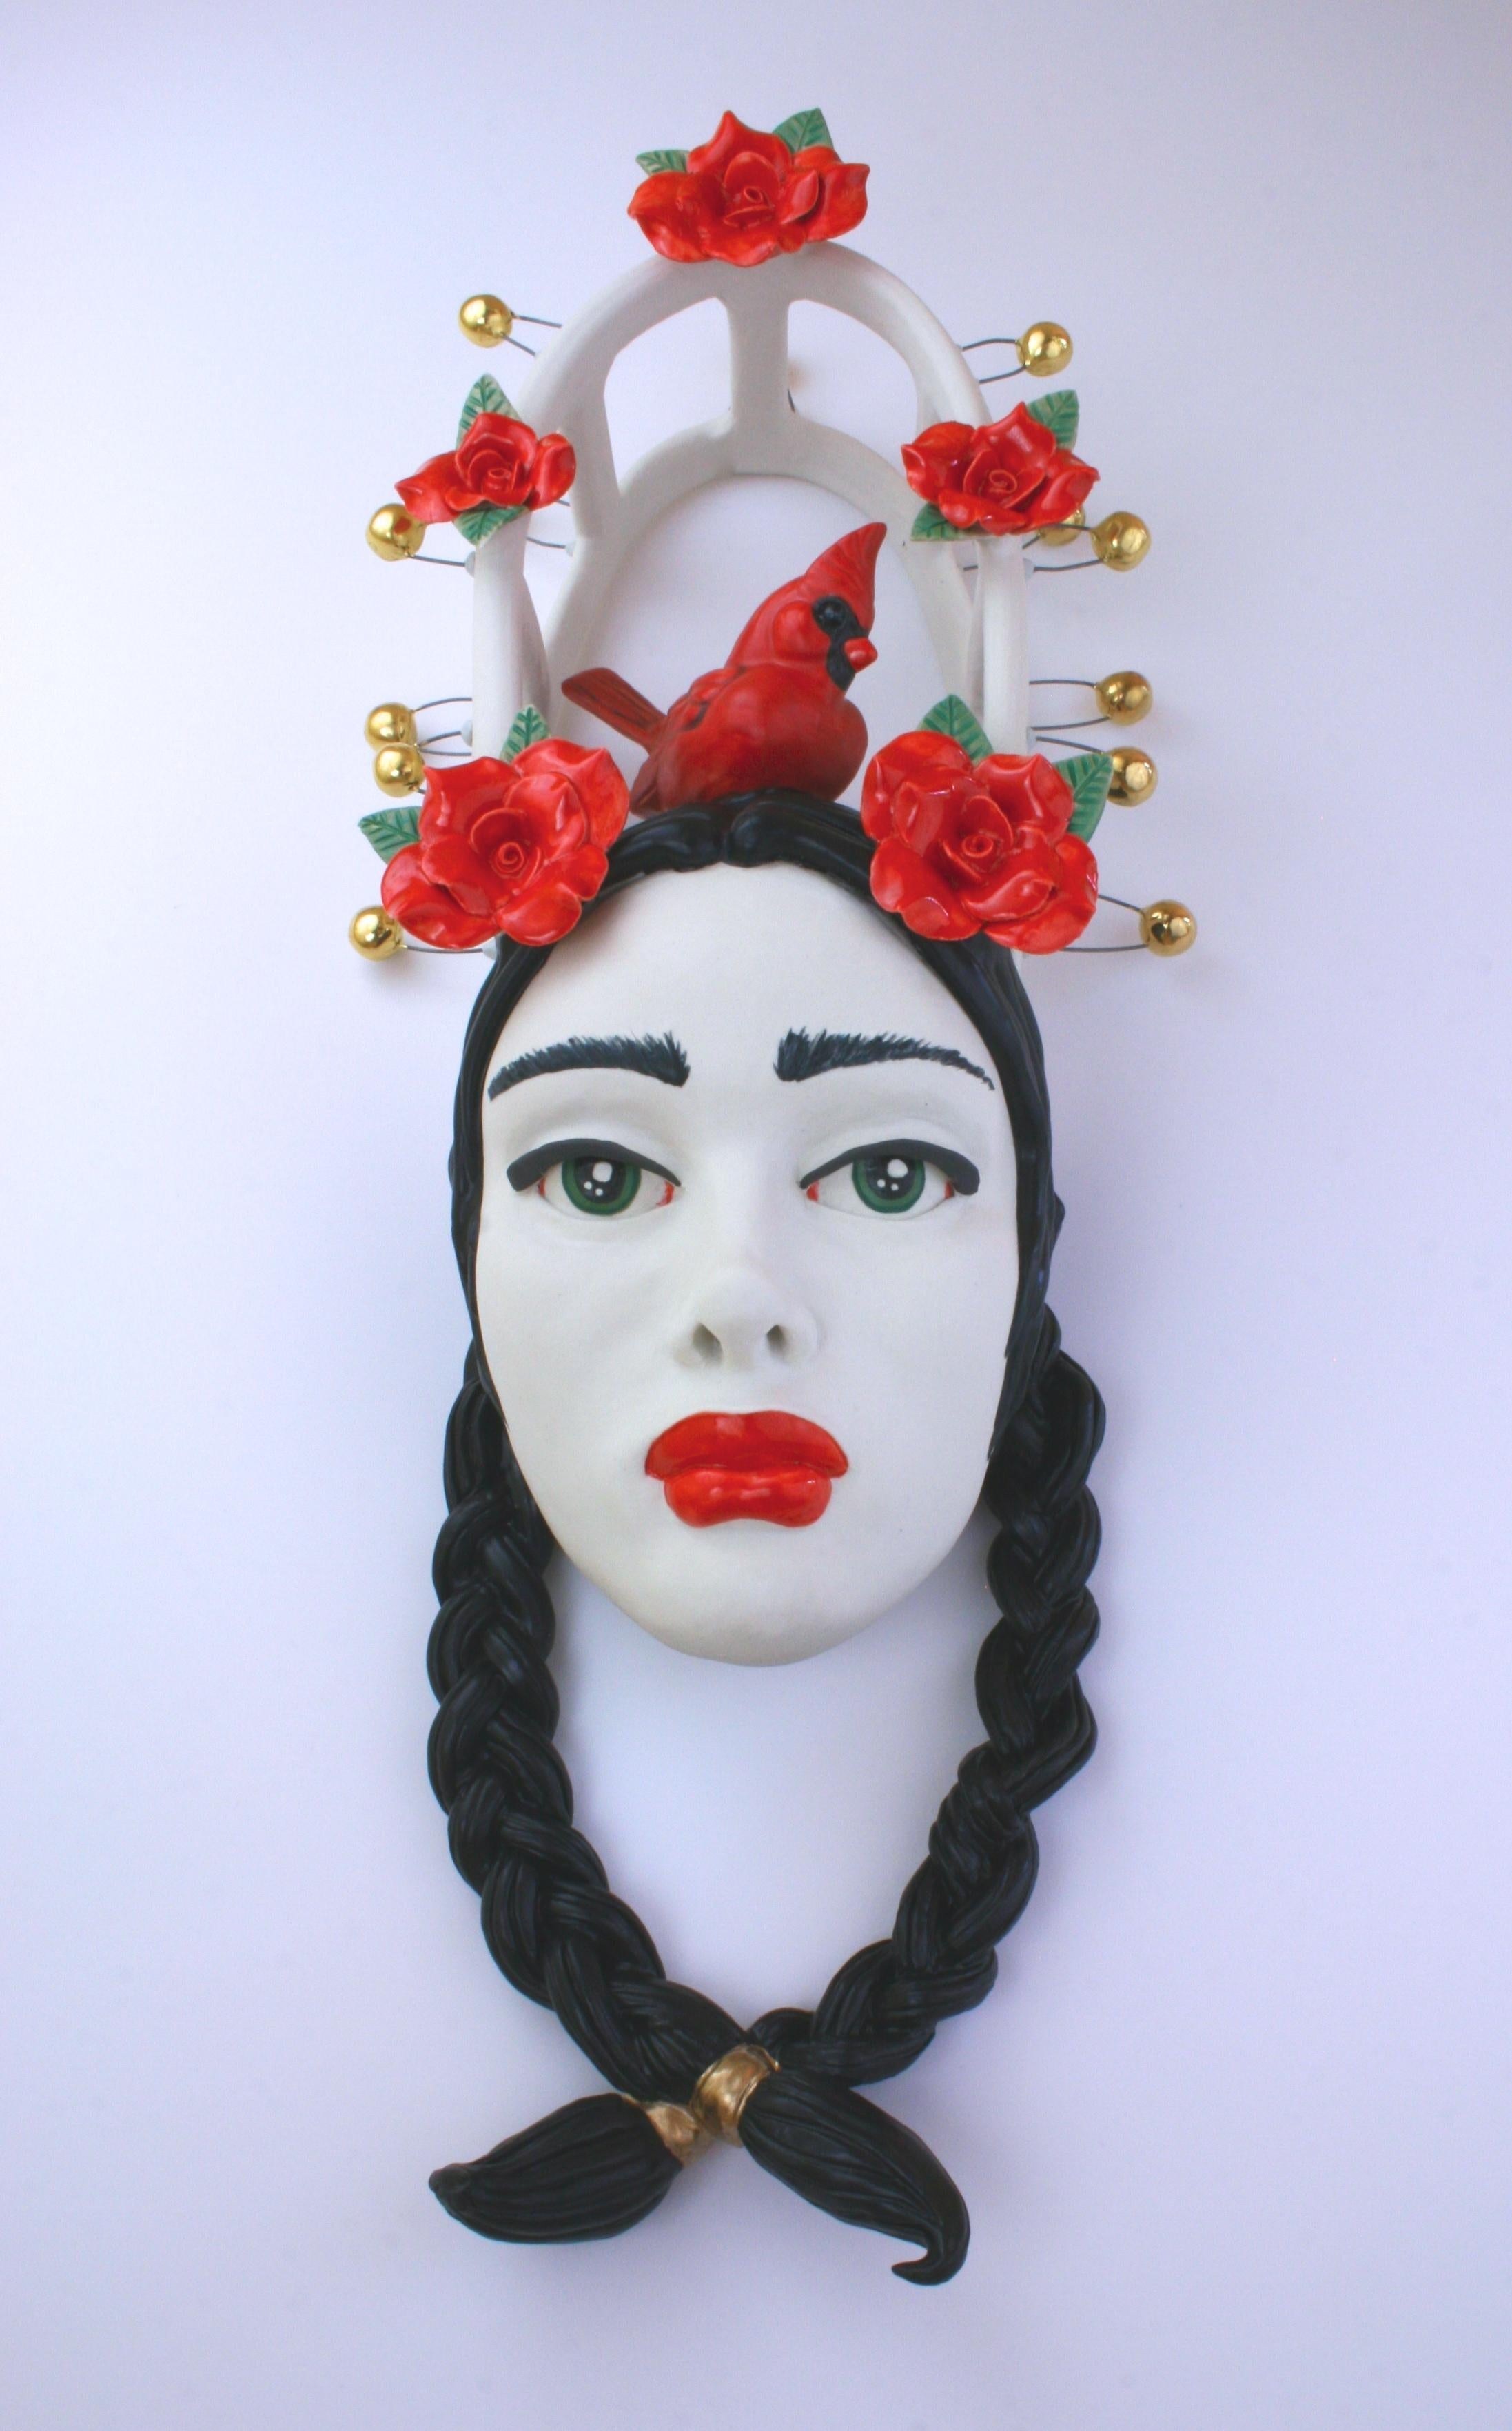 I AM RED HOT RED - porcelain ceramic sculpture with woman, cardinal and roses